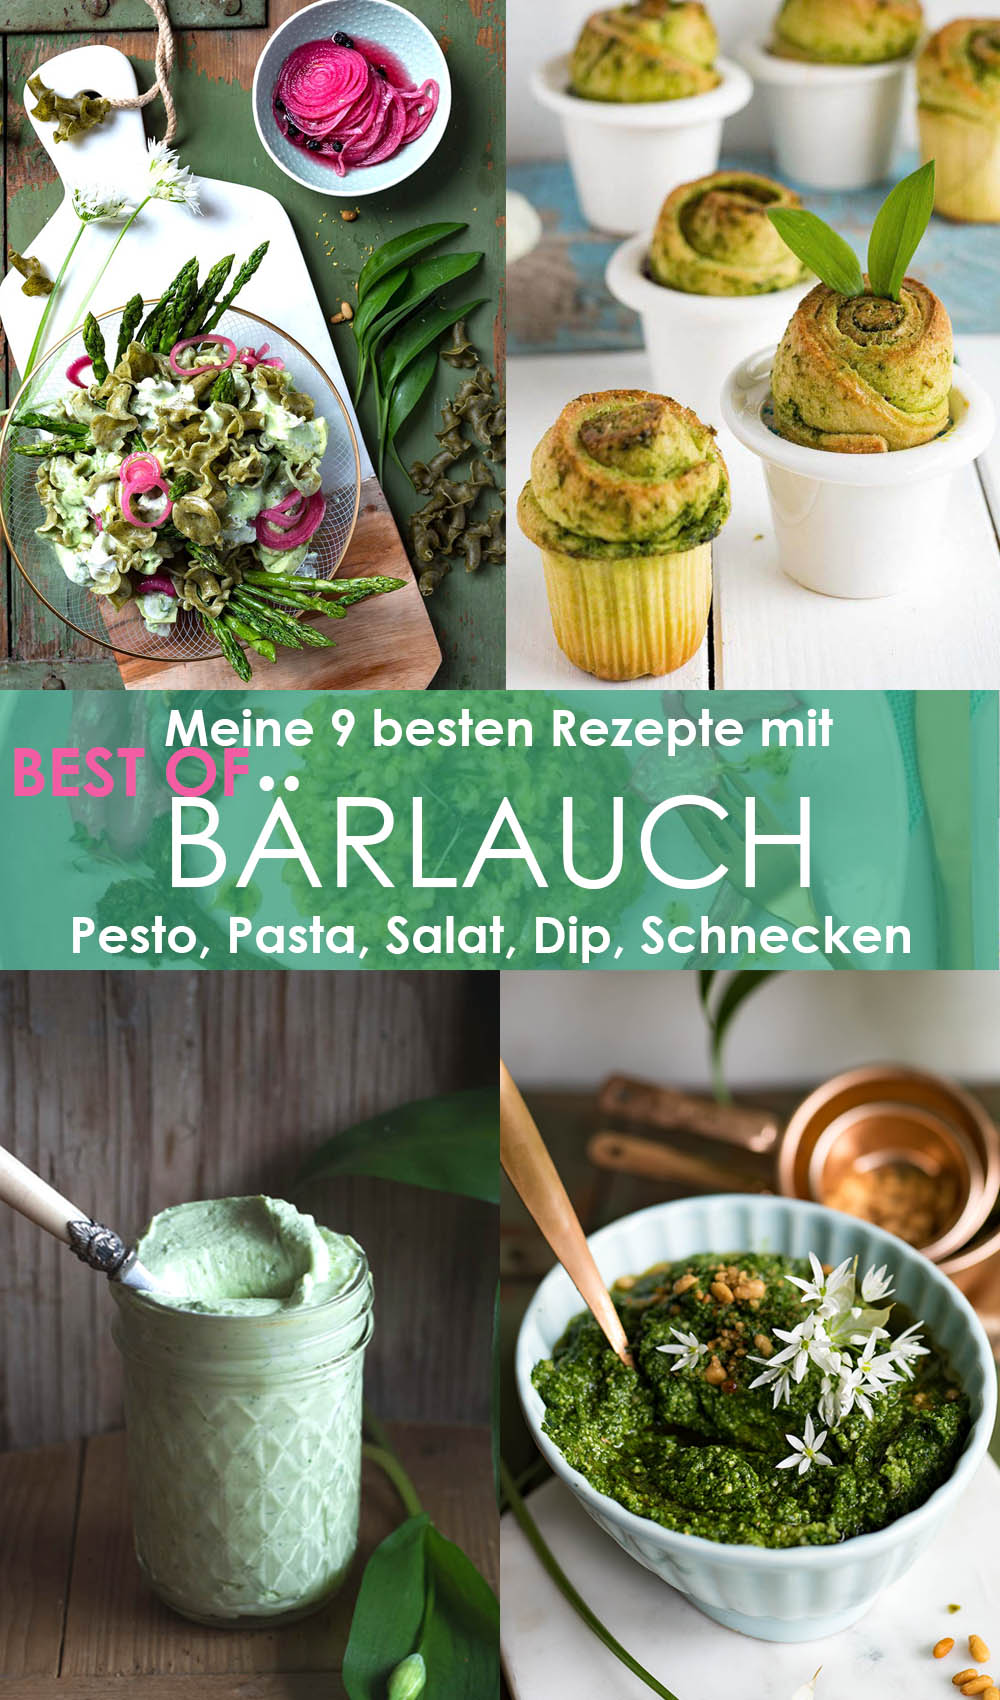 Best of Bärlauch